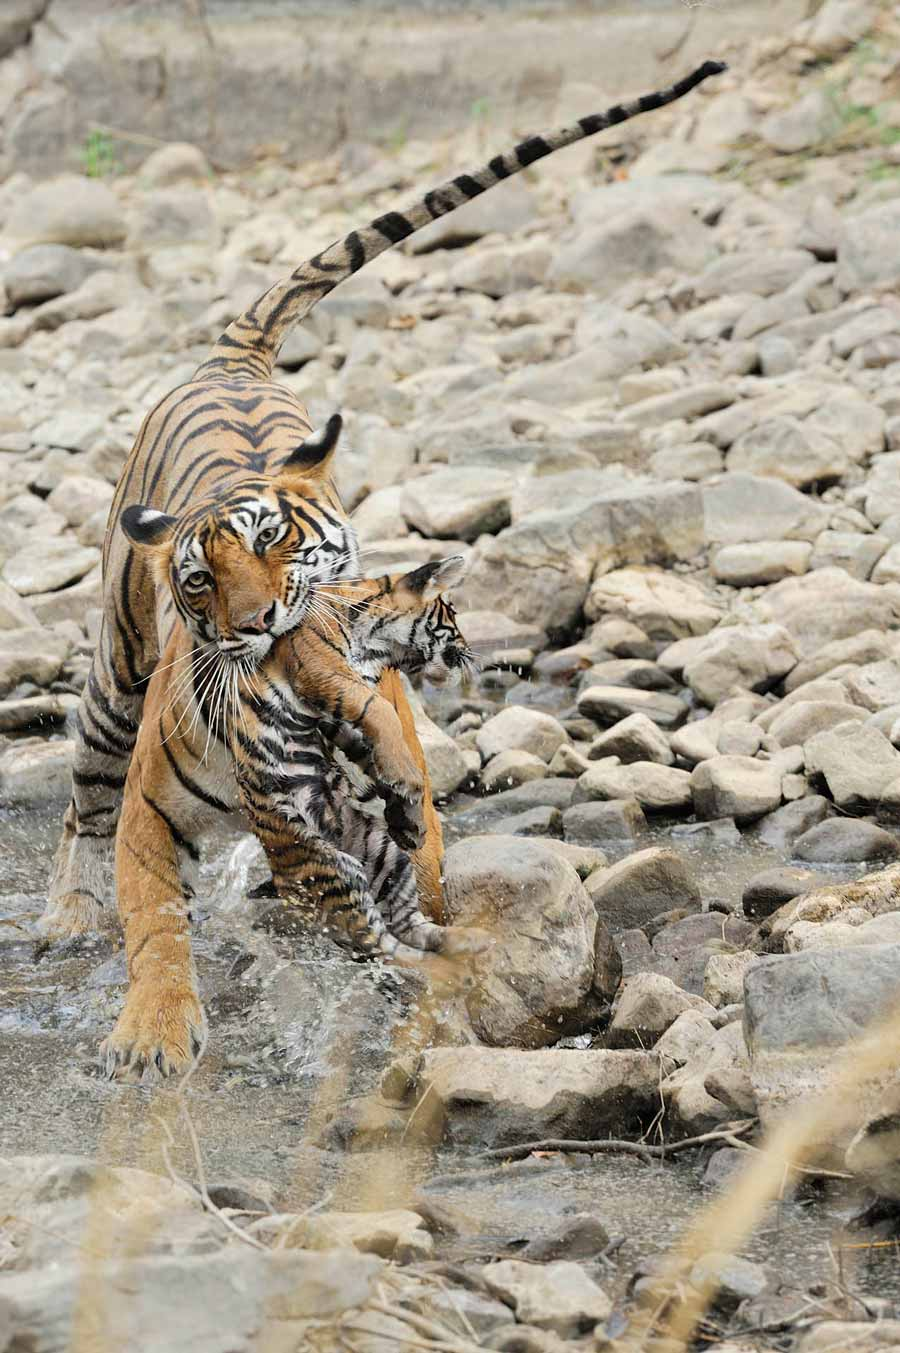 Tigress Slips While Carrying her Cub